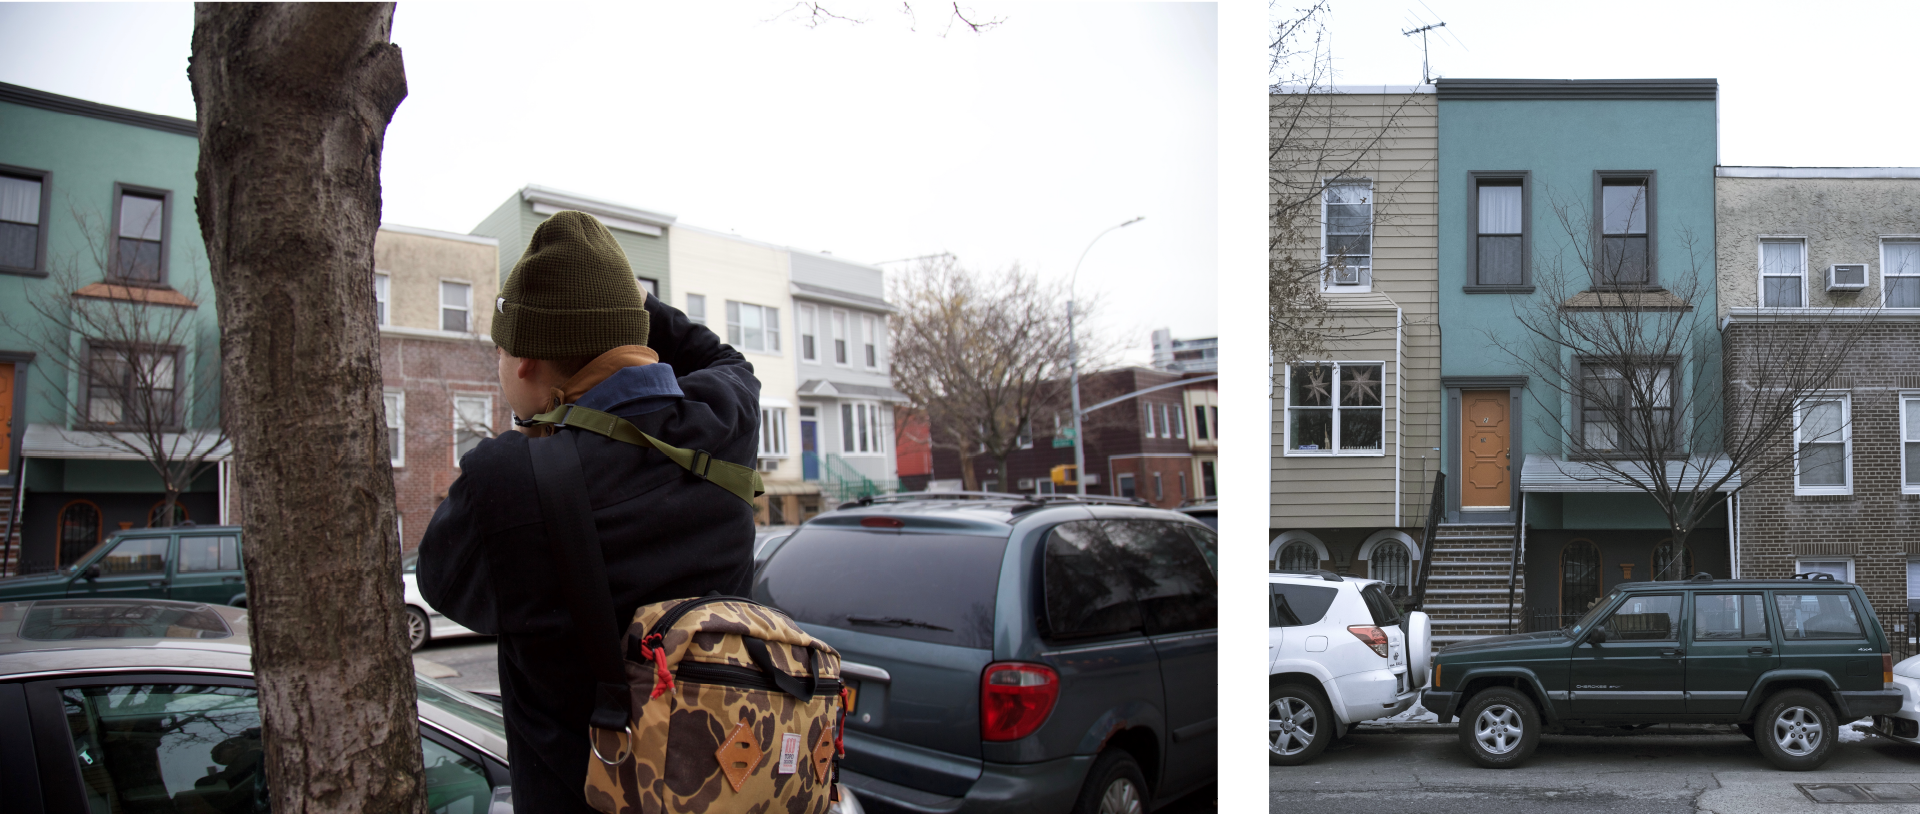 We took a little stroll through Greenpoint to check out some of the multicolored homes and hidden neighborhoods.